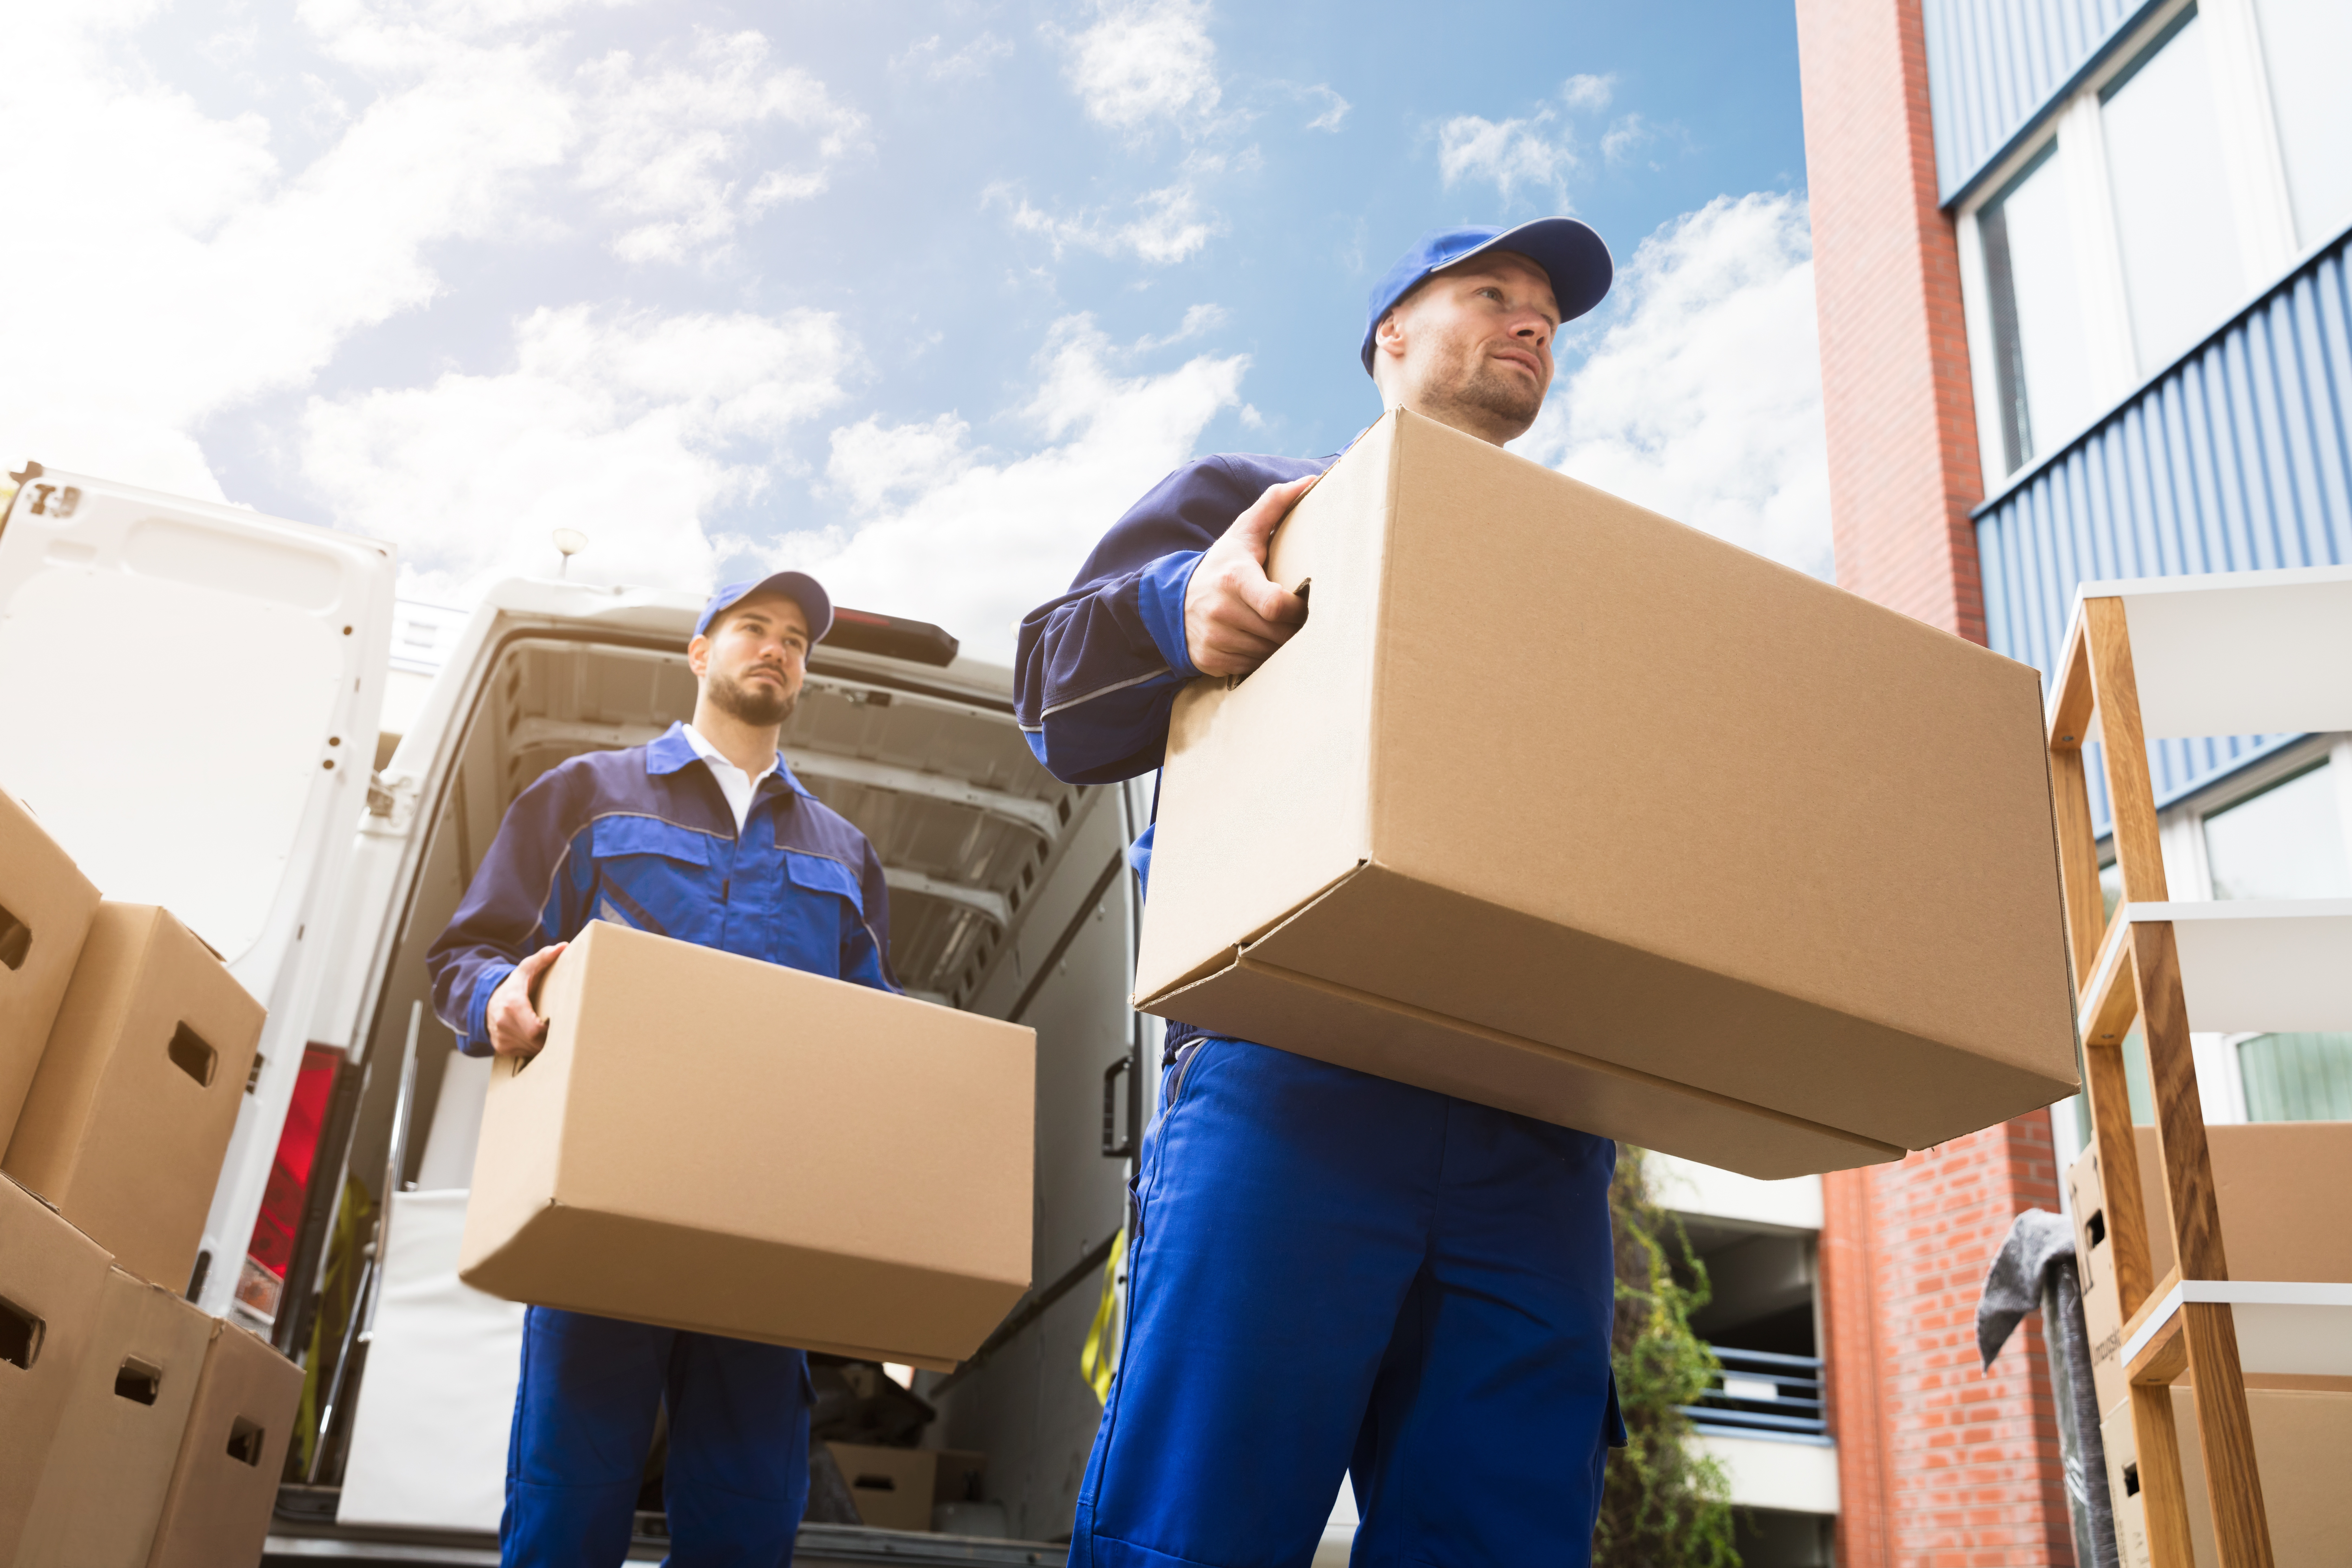 How Can I Save 'Big Money' While Moving?